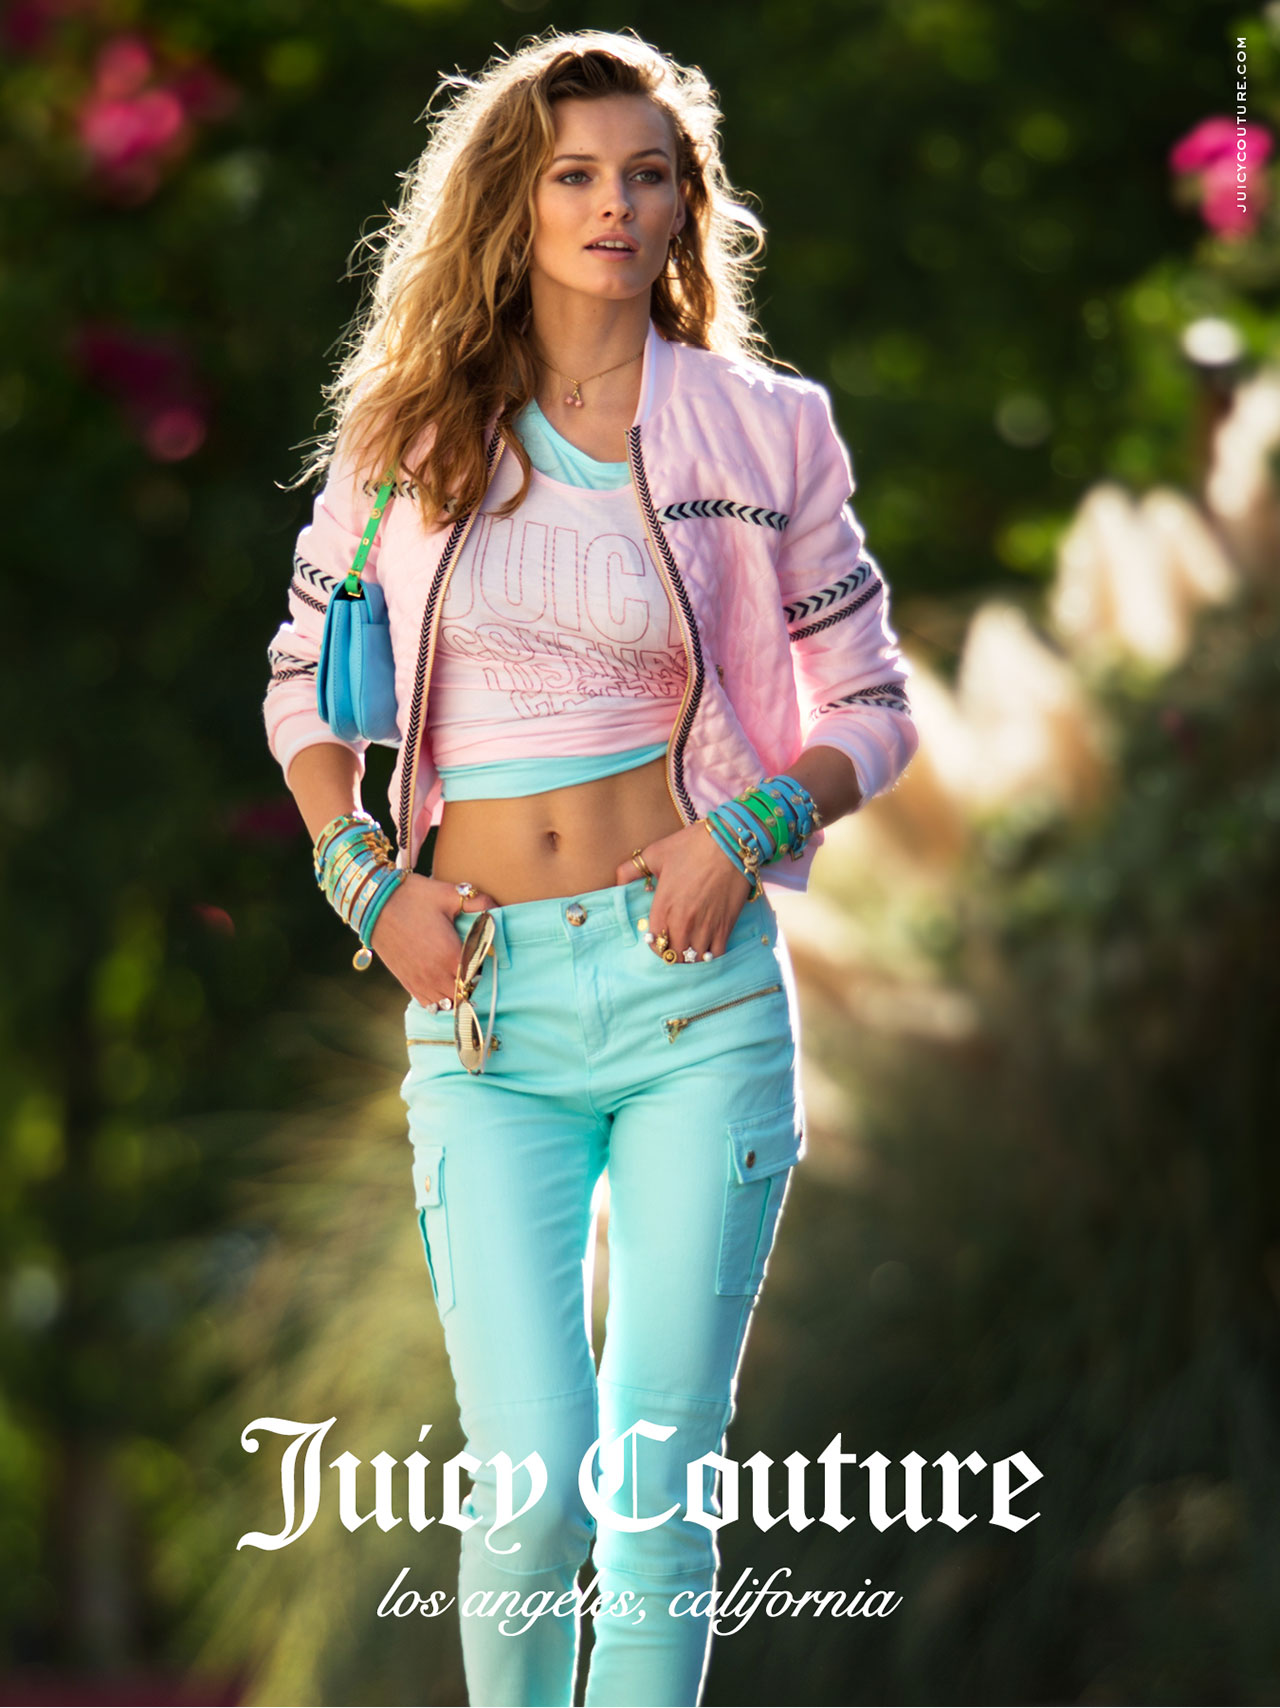 Easy A Girl Wallpapers Juicy Couture Spring 2015 Models Com Mdx